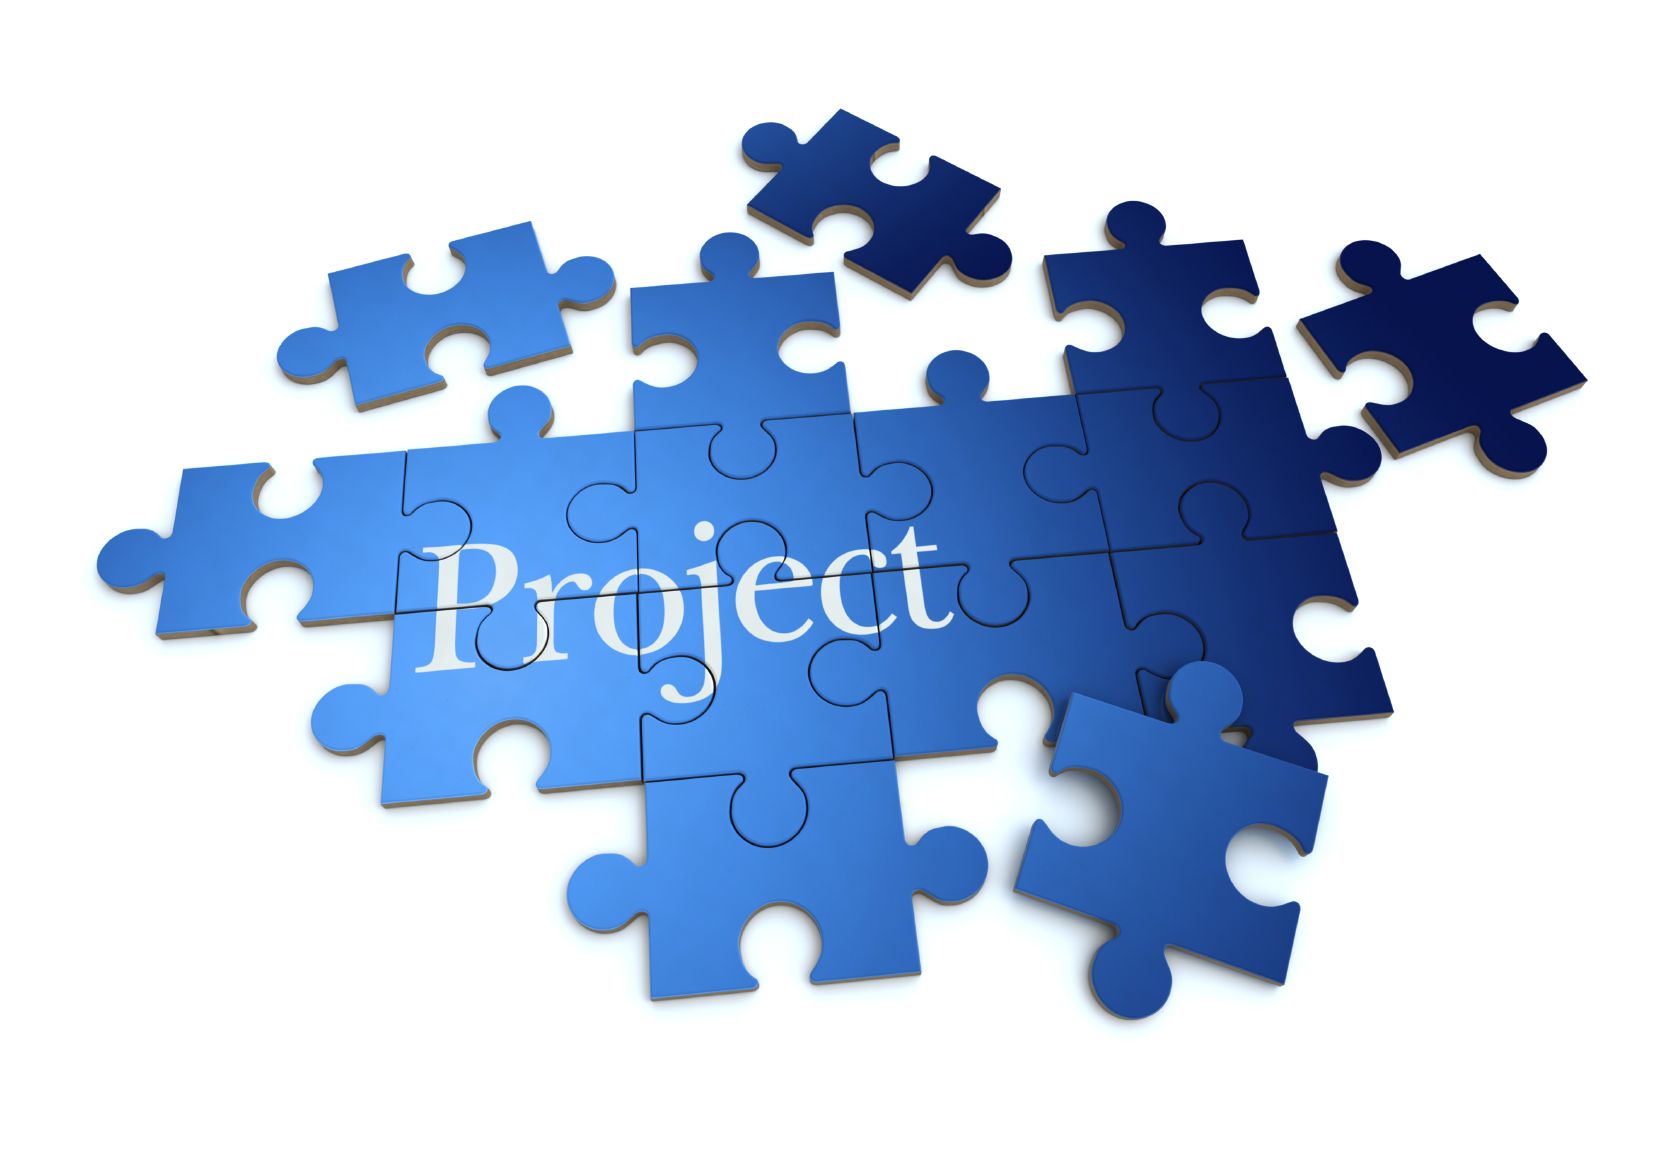 project management a project istemporaryin that Project management a project is a temporary endeavor undertaken to create a unique product, service or result a project is temporary in that it has a defined.